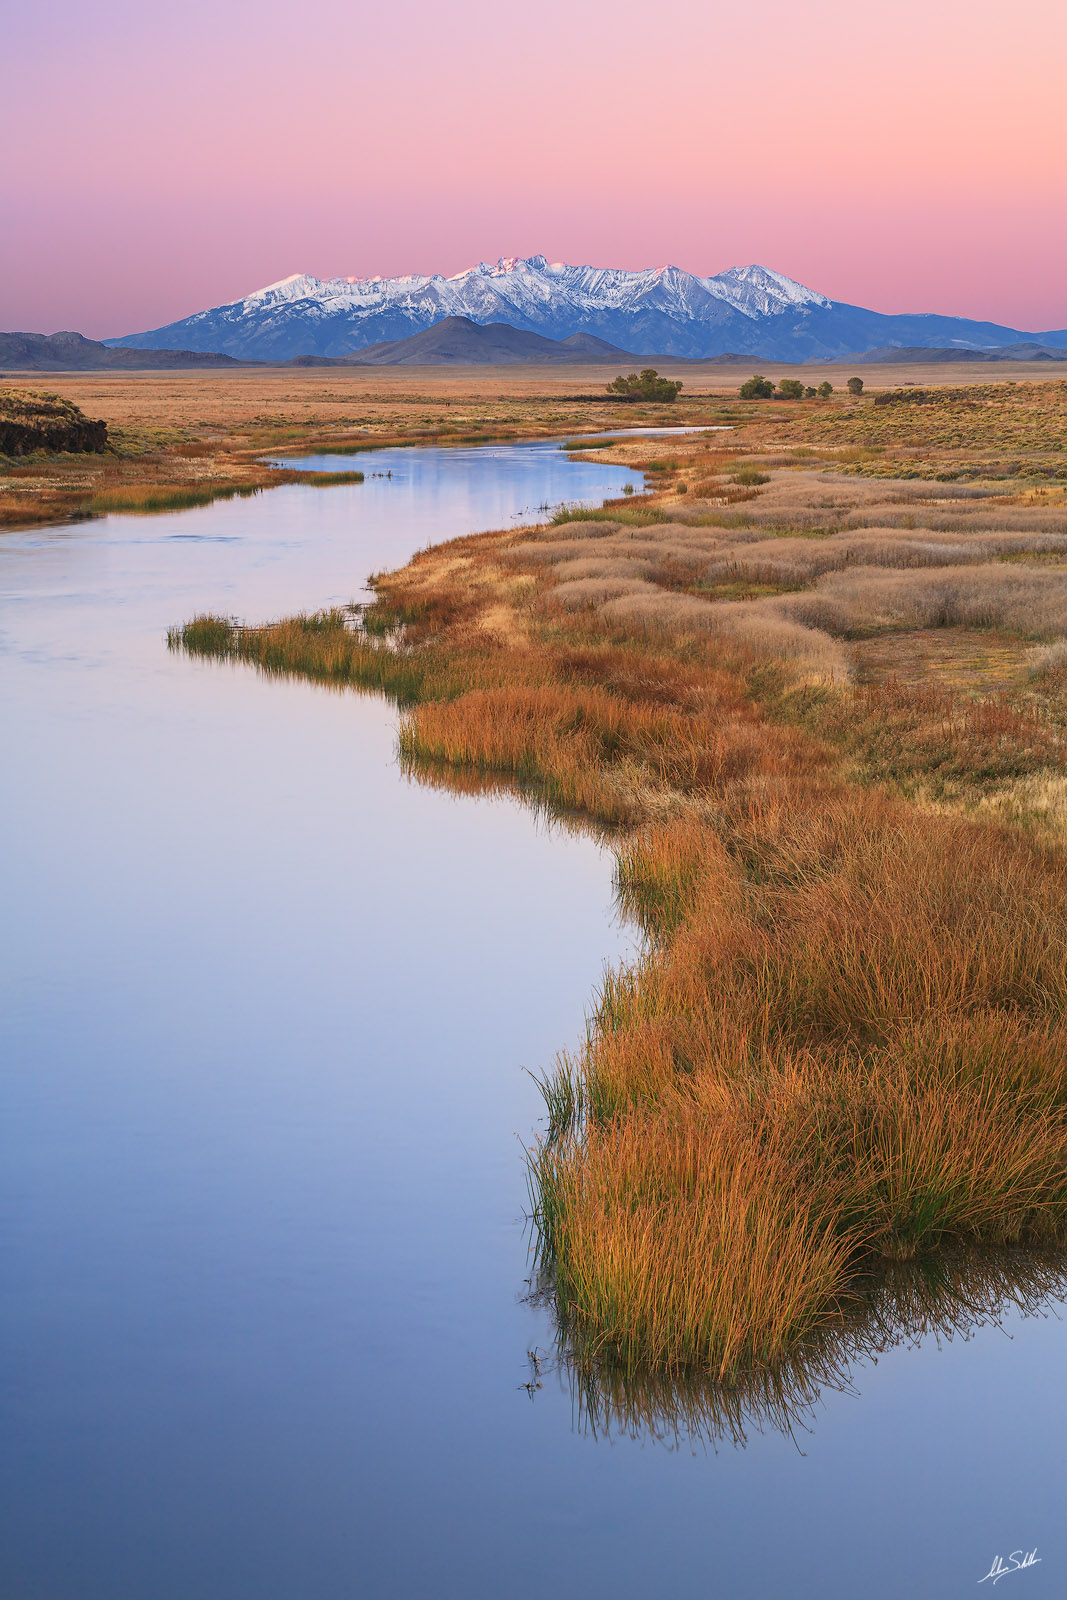 Blanca, Blanca Massif, CO, Colorado, Mountains, Rio Grande, Riparian, River, San Luis Valley, Sangre de Cristo, Wild Grasses, grass, grasses, photo